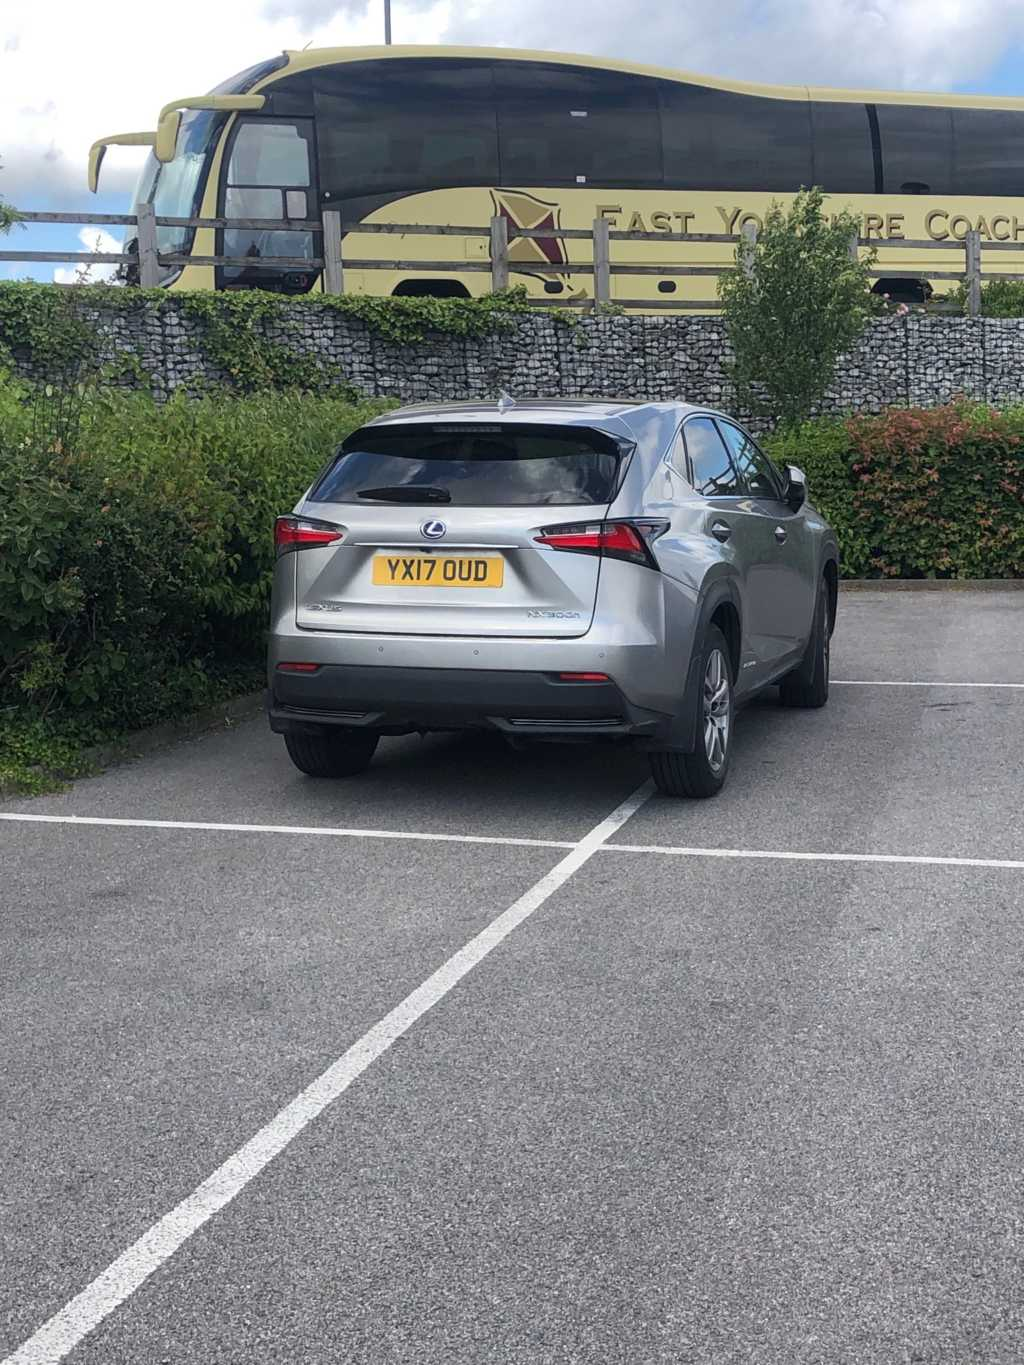 YX17 OUD displaying Inconsiderate Parking